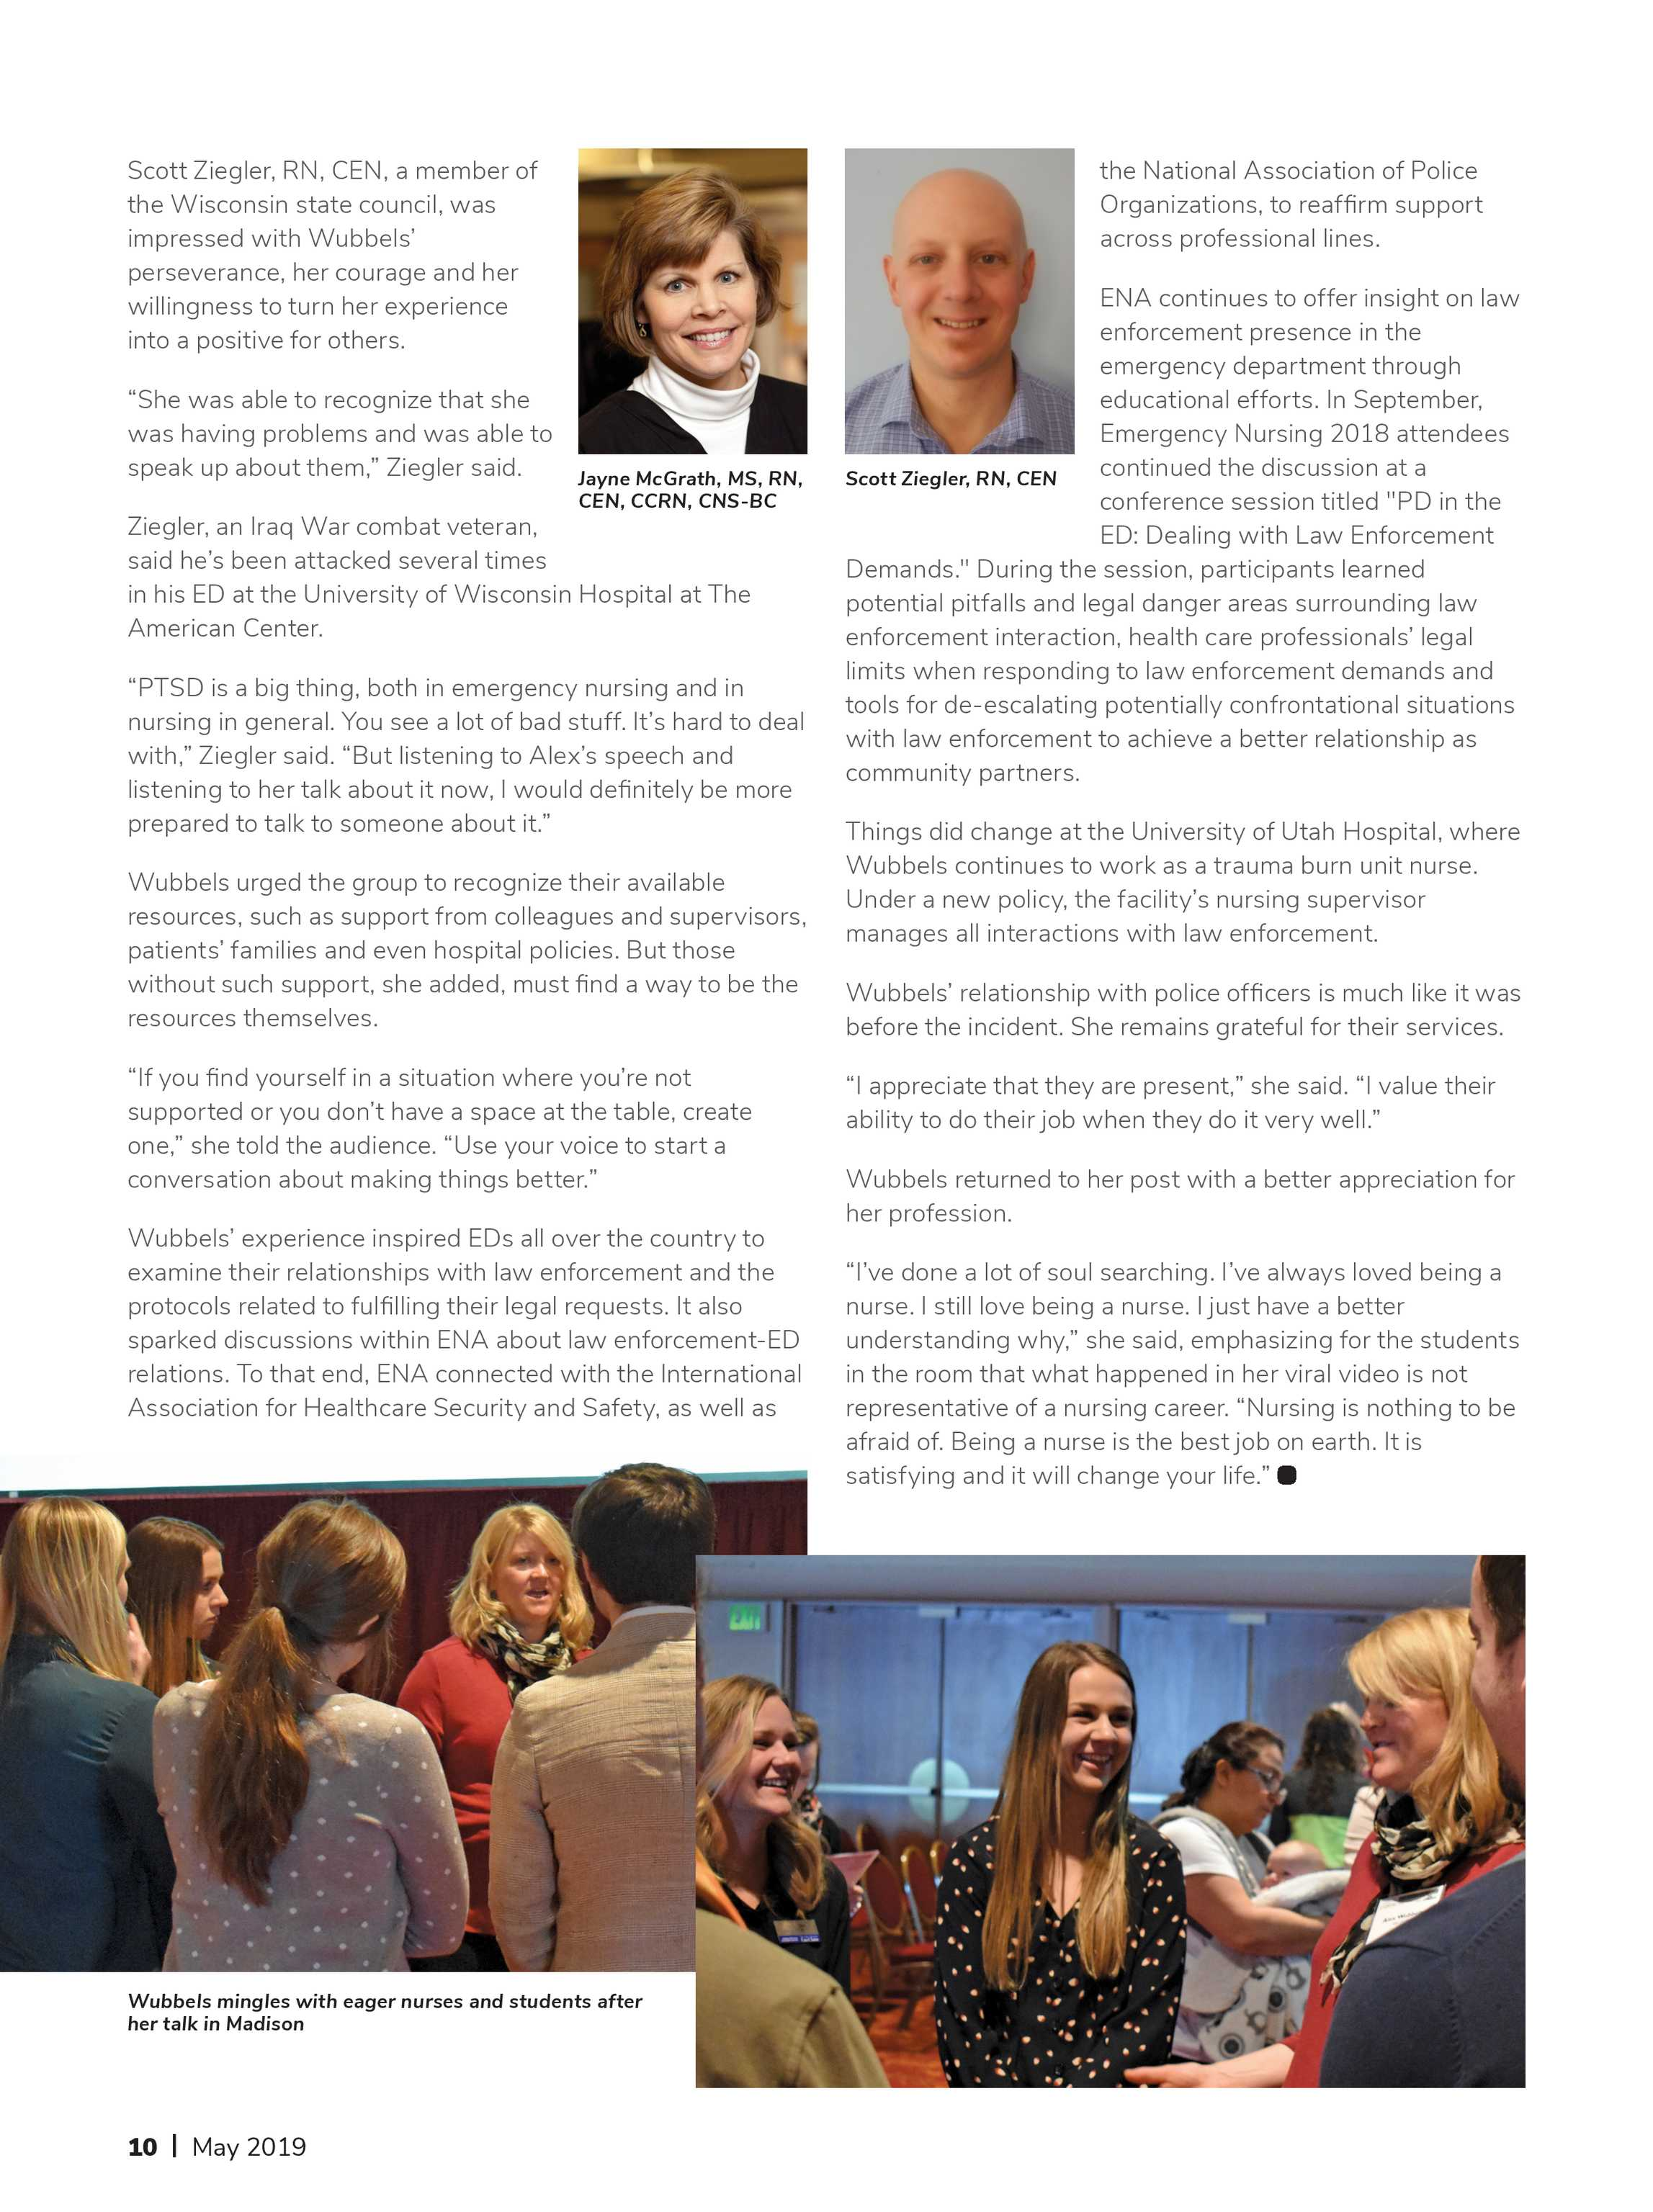 ENA Connection - May 2019 - page 10